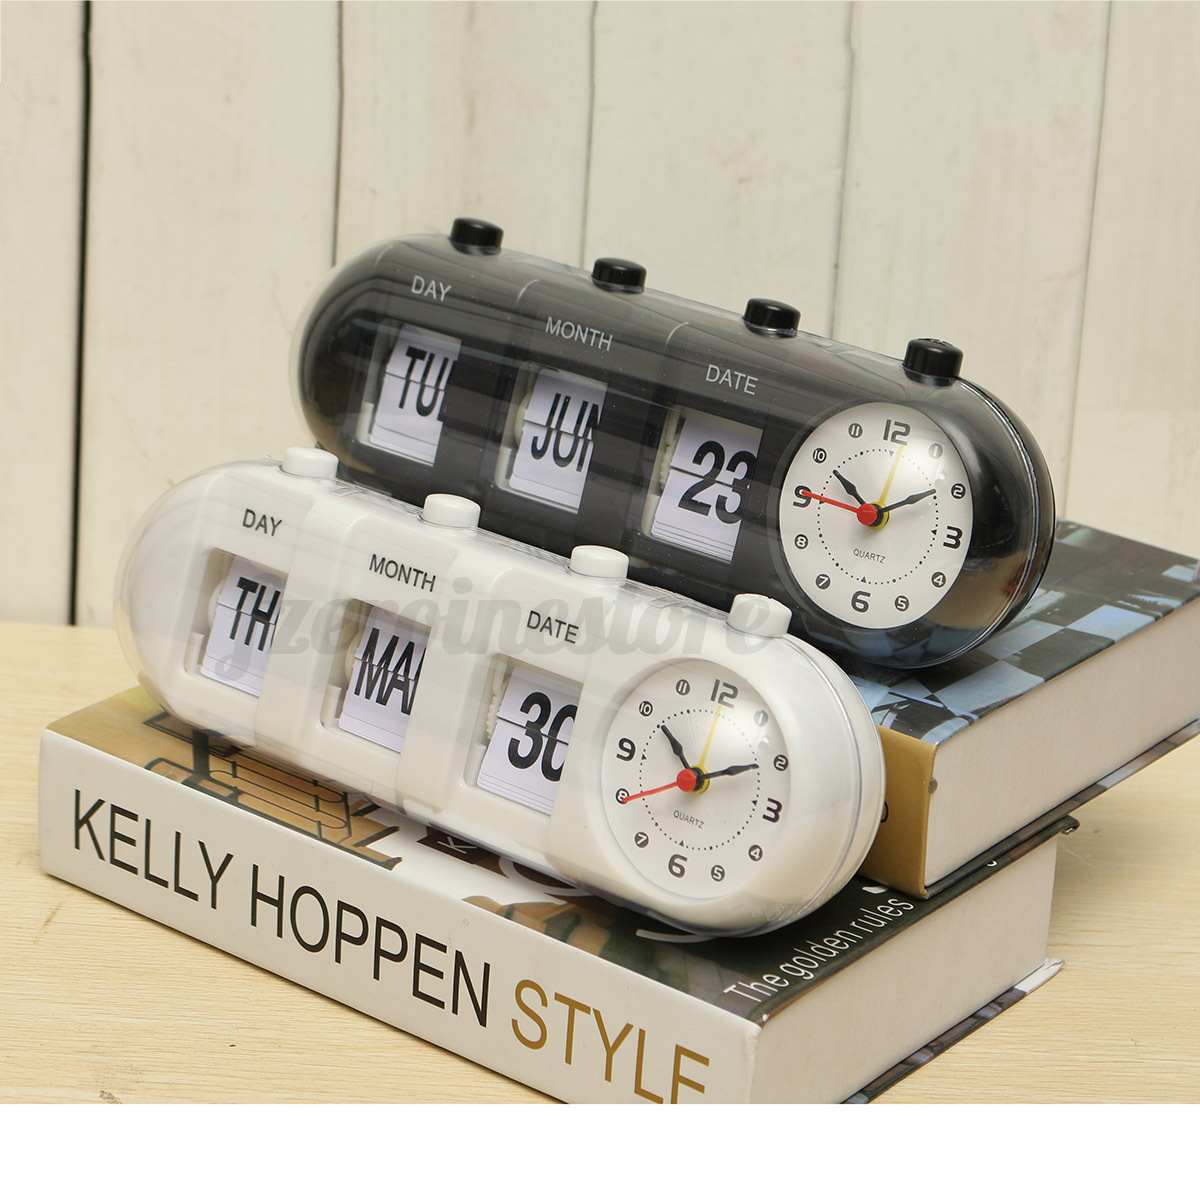 1x retro flip digital quartz desk alarm clock day date calendar time display ebay. Black Bedroom Furniture Sets. Home Design Ideas